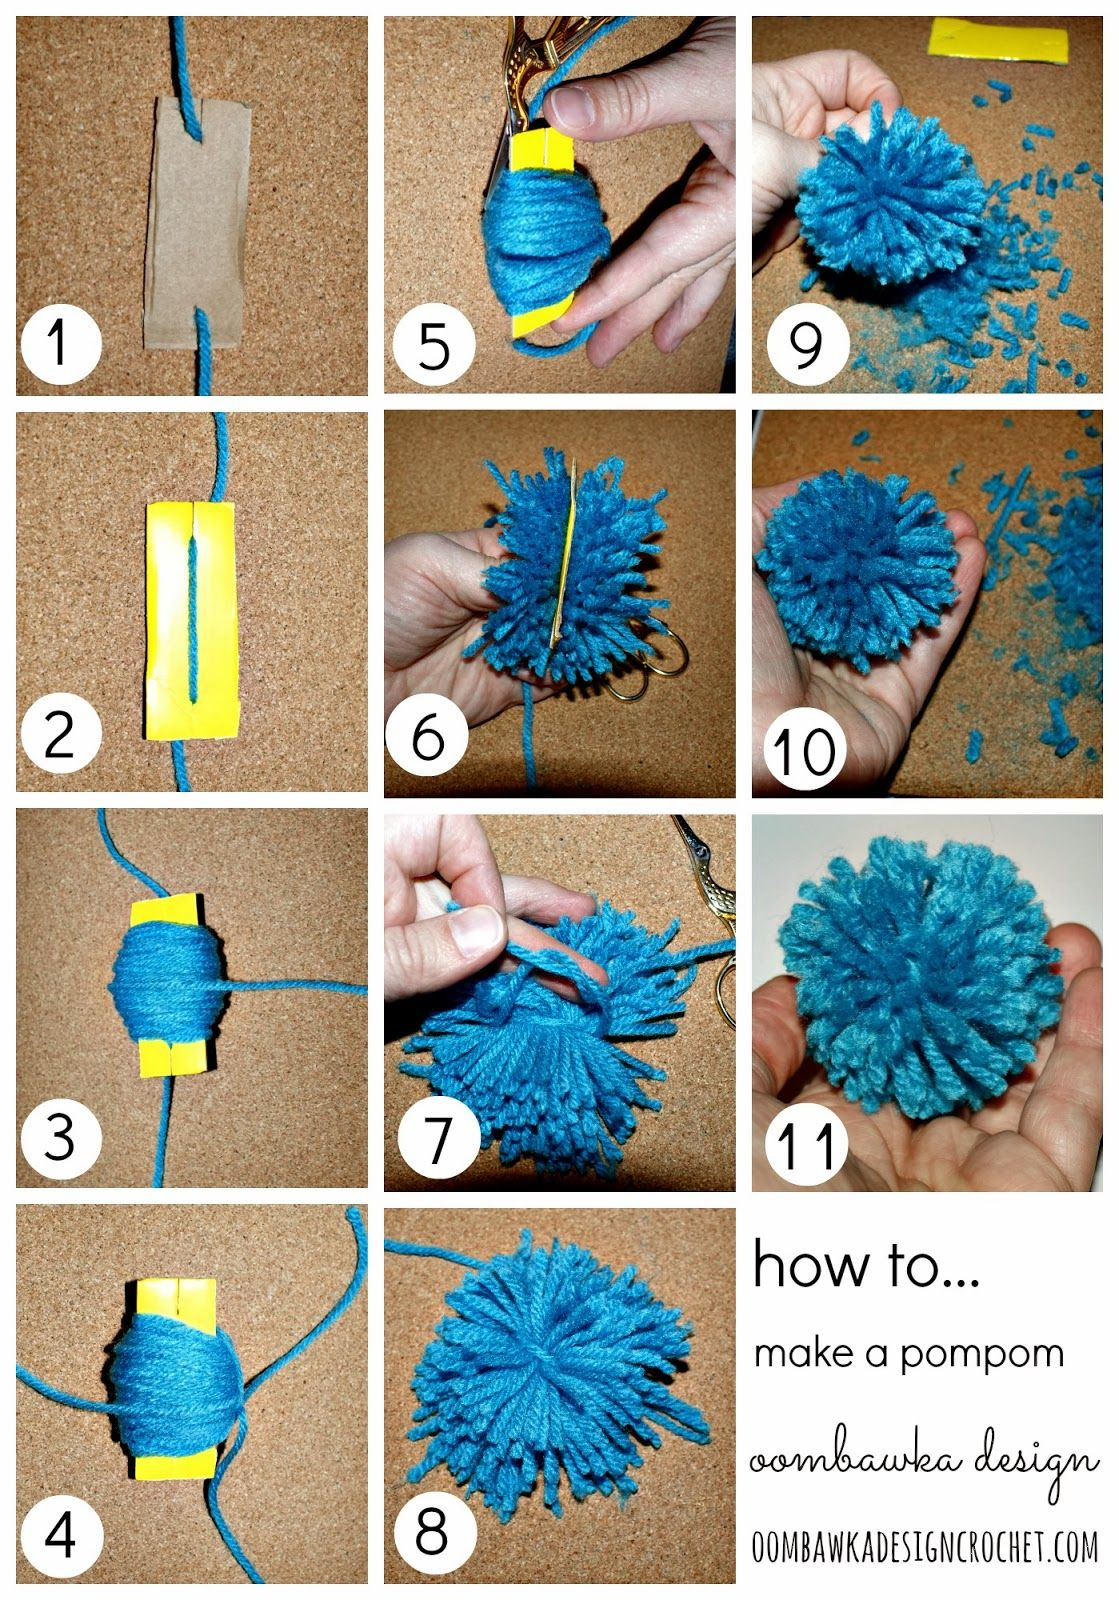 how to make a pompom craftabulous crochet crochet patterns crochet projects. Black Bedroom Furniture Sets. Home Design Ideas